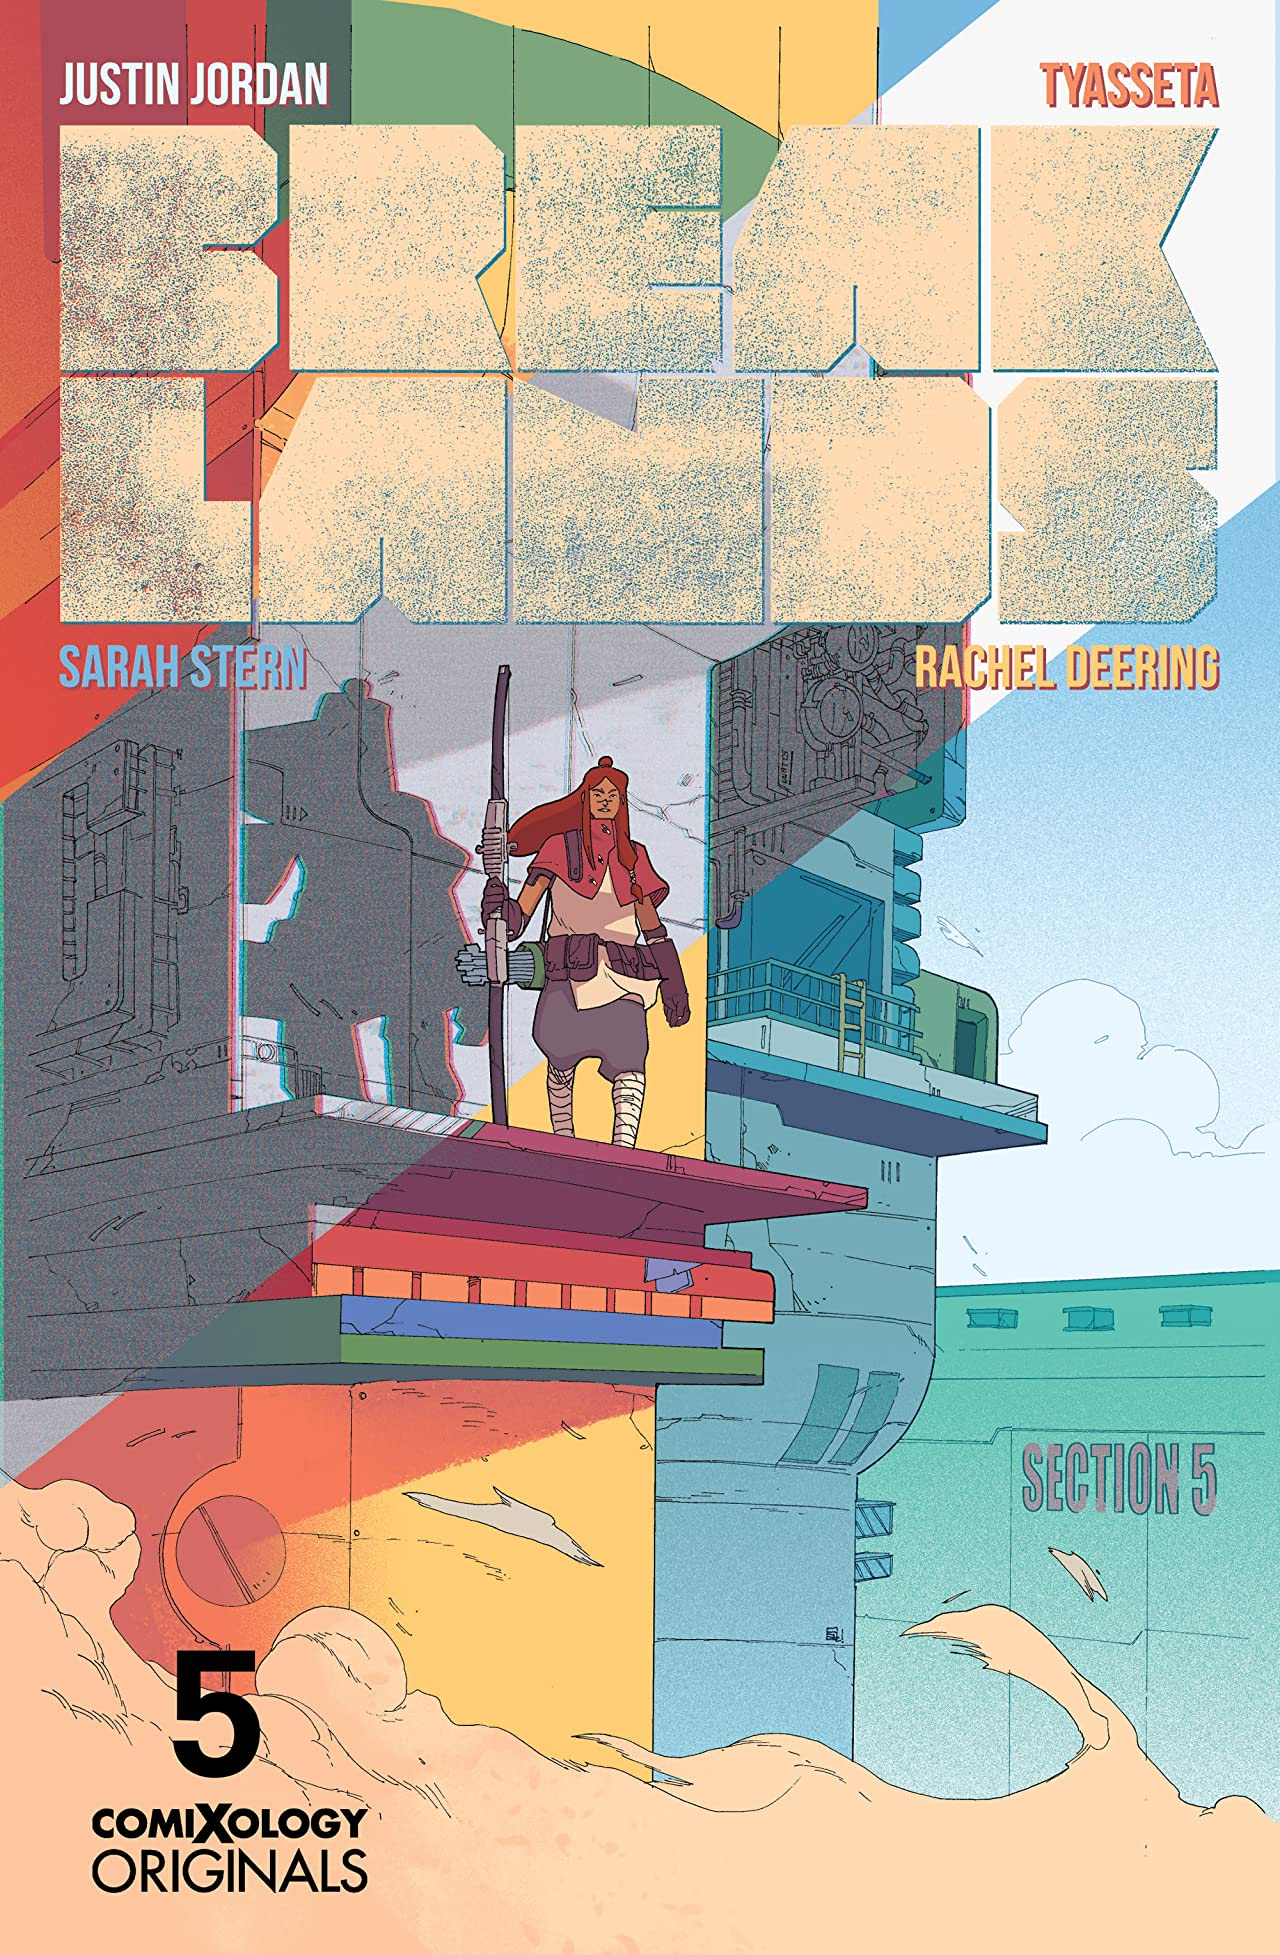 Breaklands (comiXology Originals) #5 (of 5)